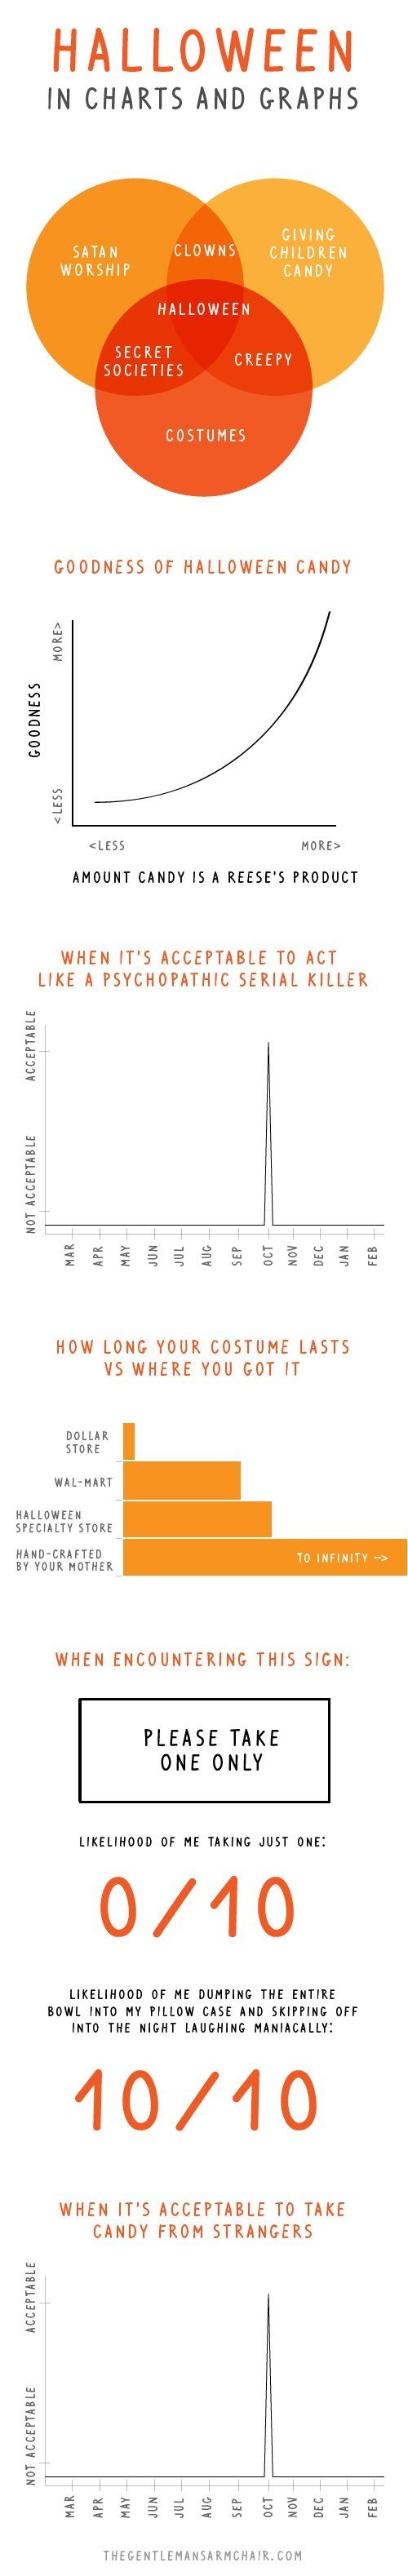 Chart halloween infographic holidays hallowmeme g rated - 7874467072